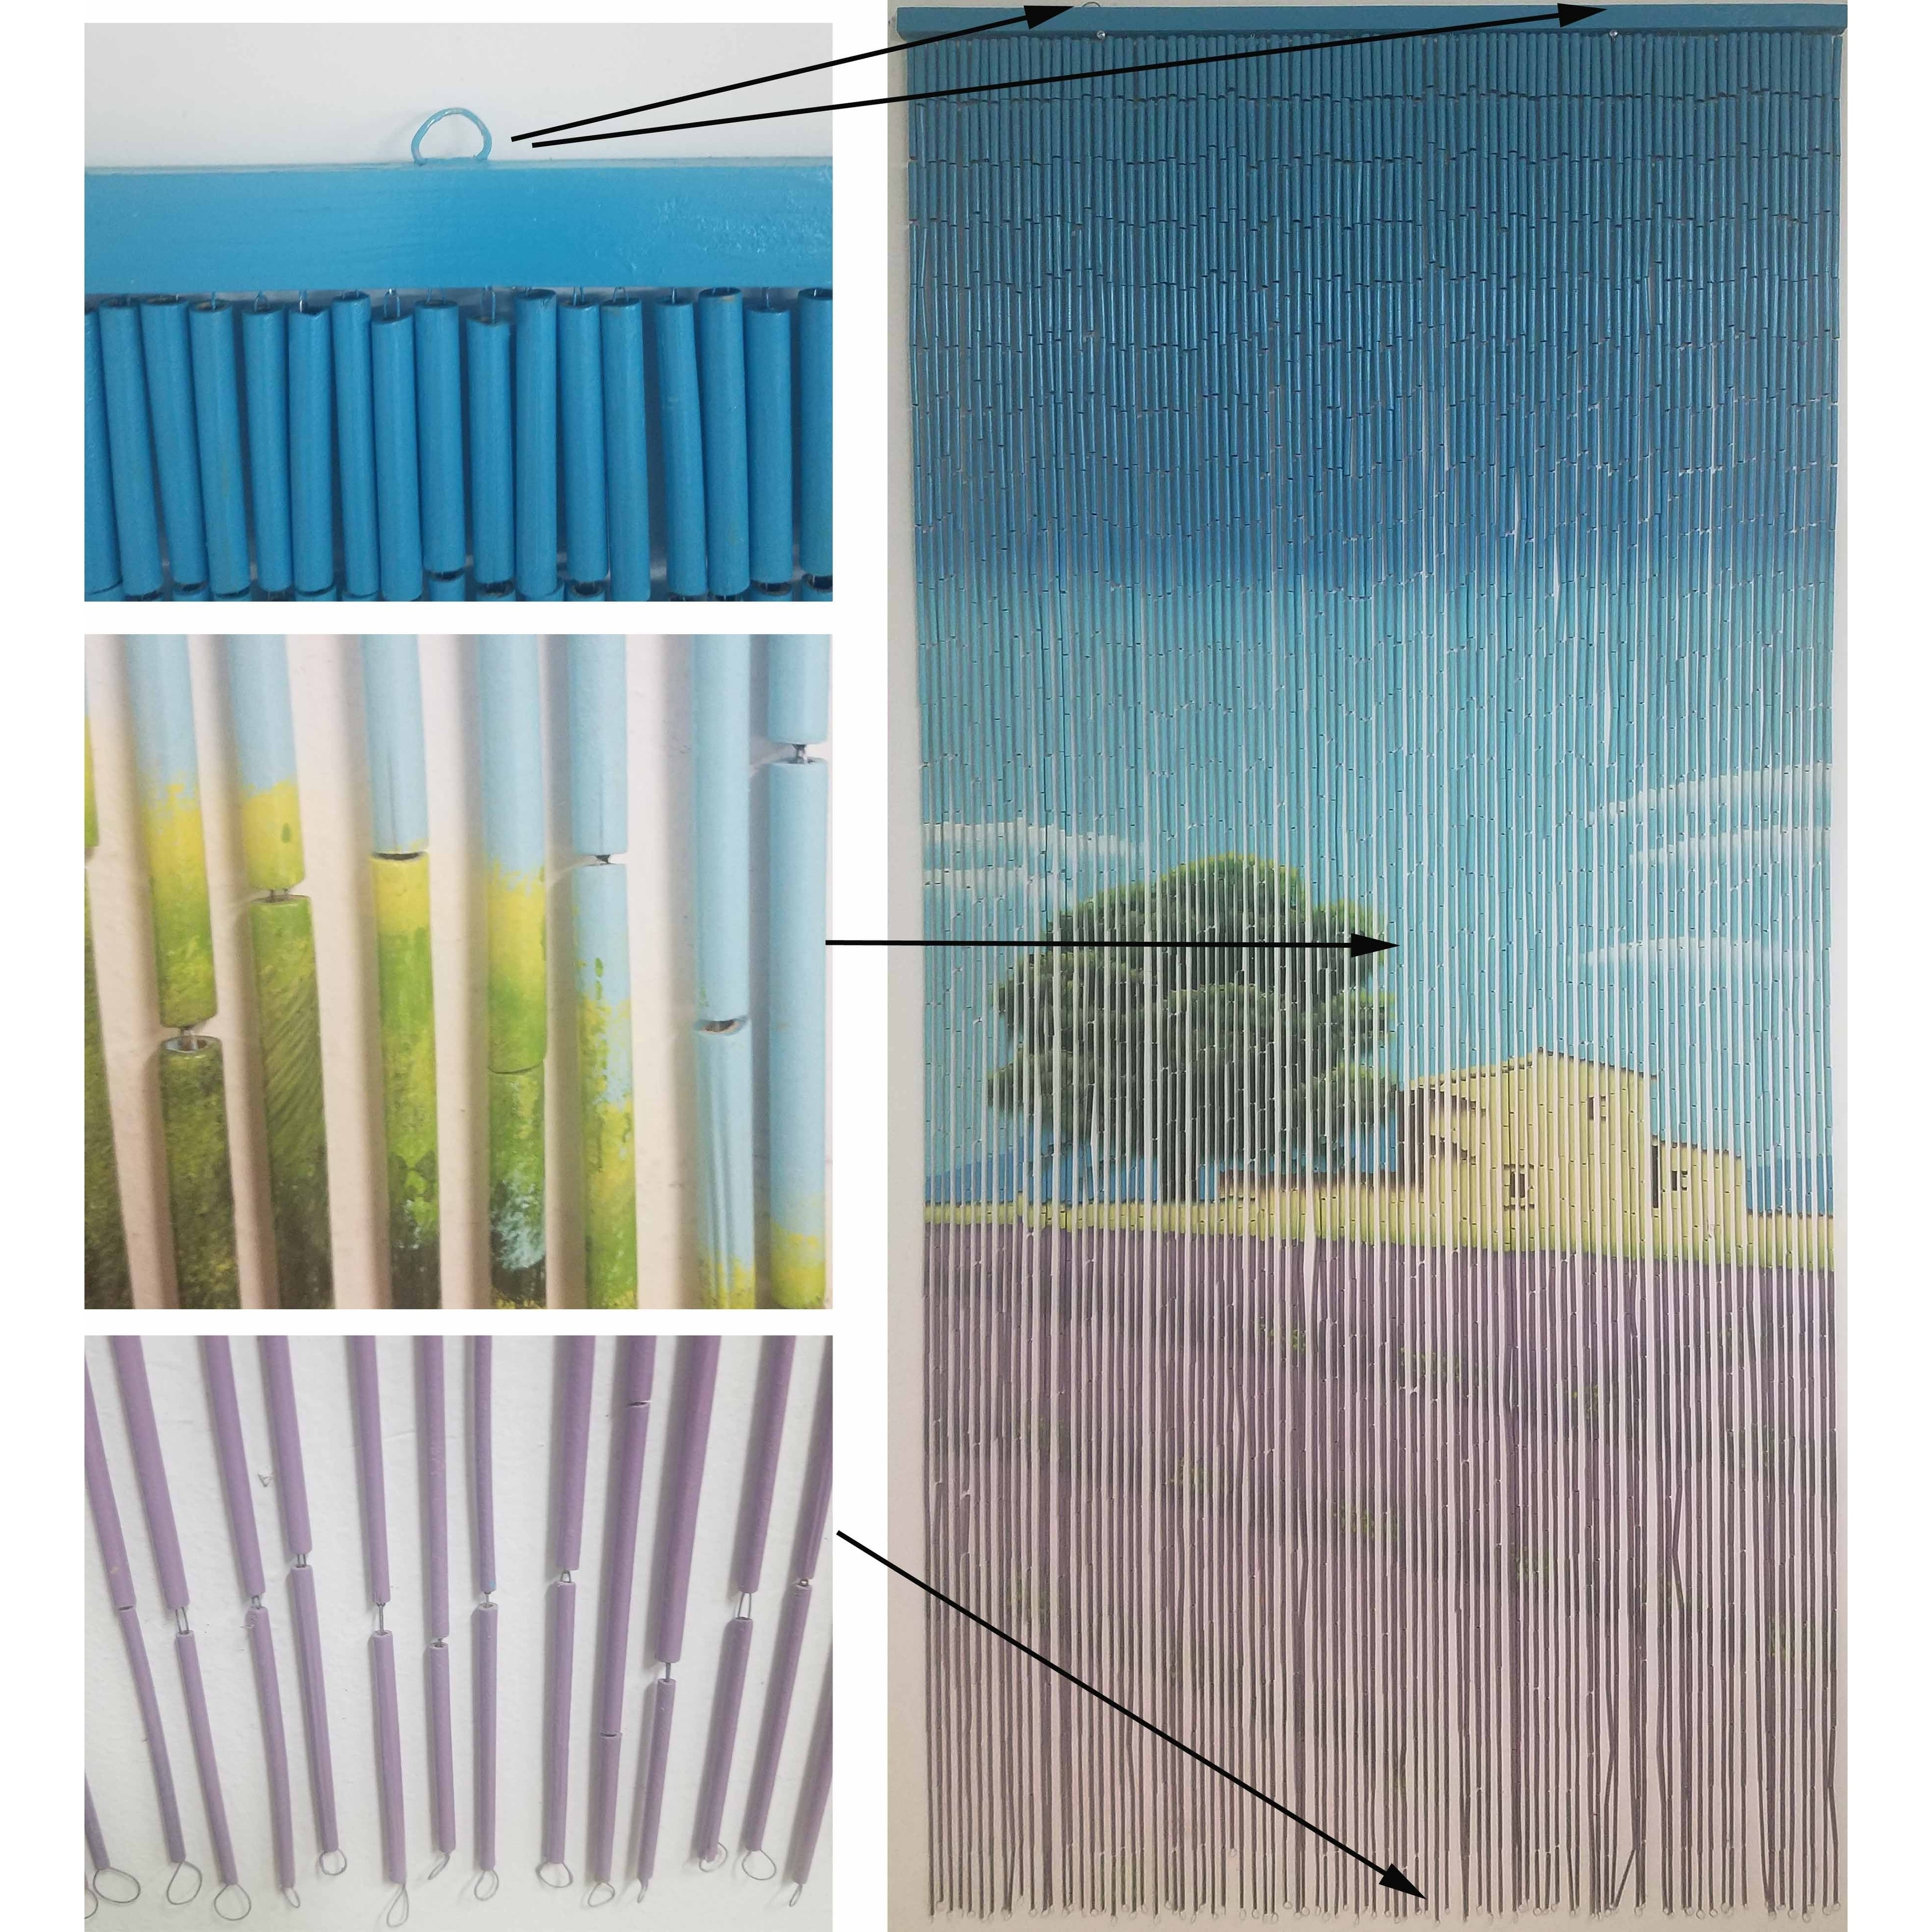 Evideco Bamboo Beaded Curtain Doorway 90 Strings 78 8 H X 35 5 W 8h Inch 200x90 Cm Free Shipping Today 23002625